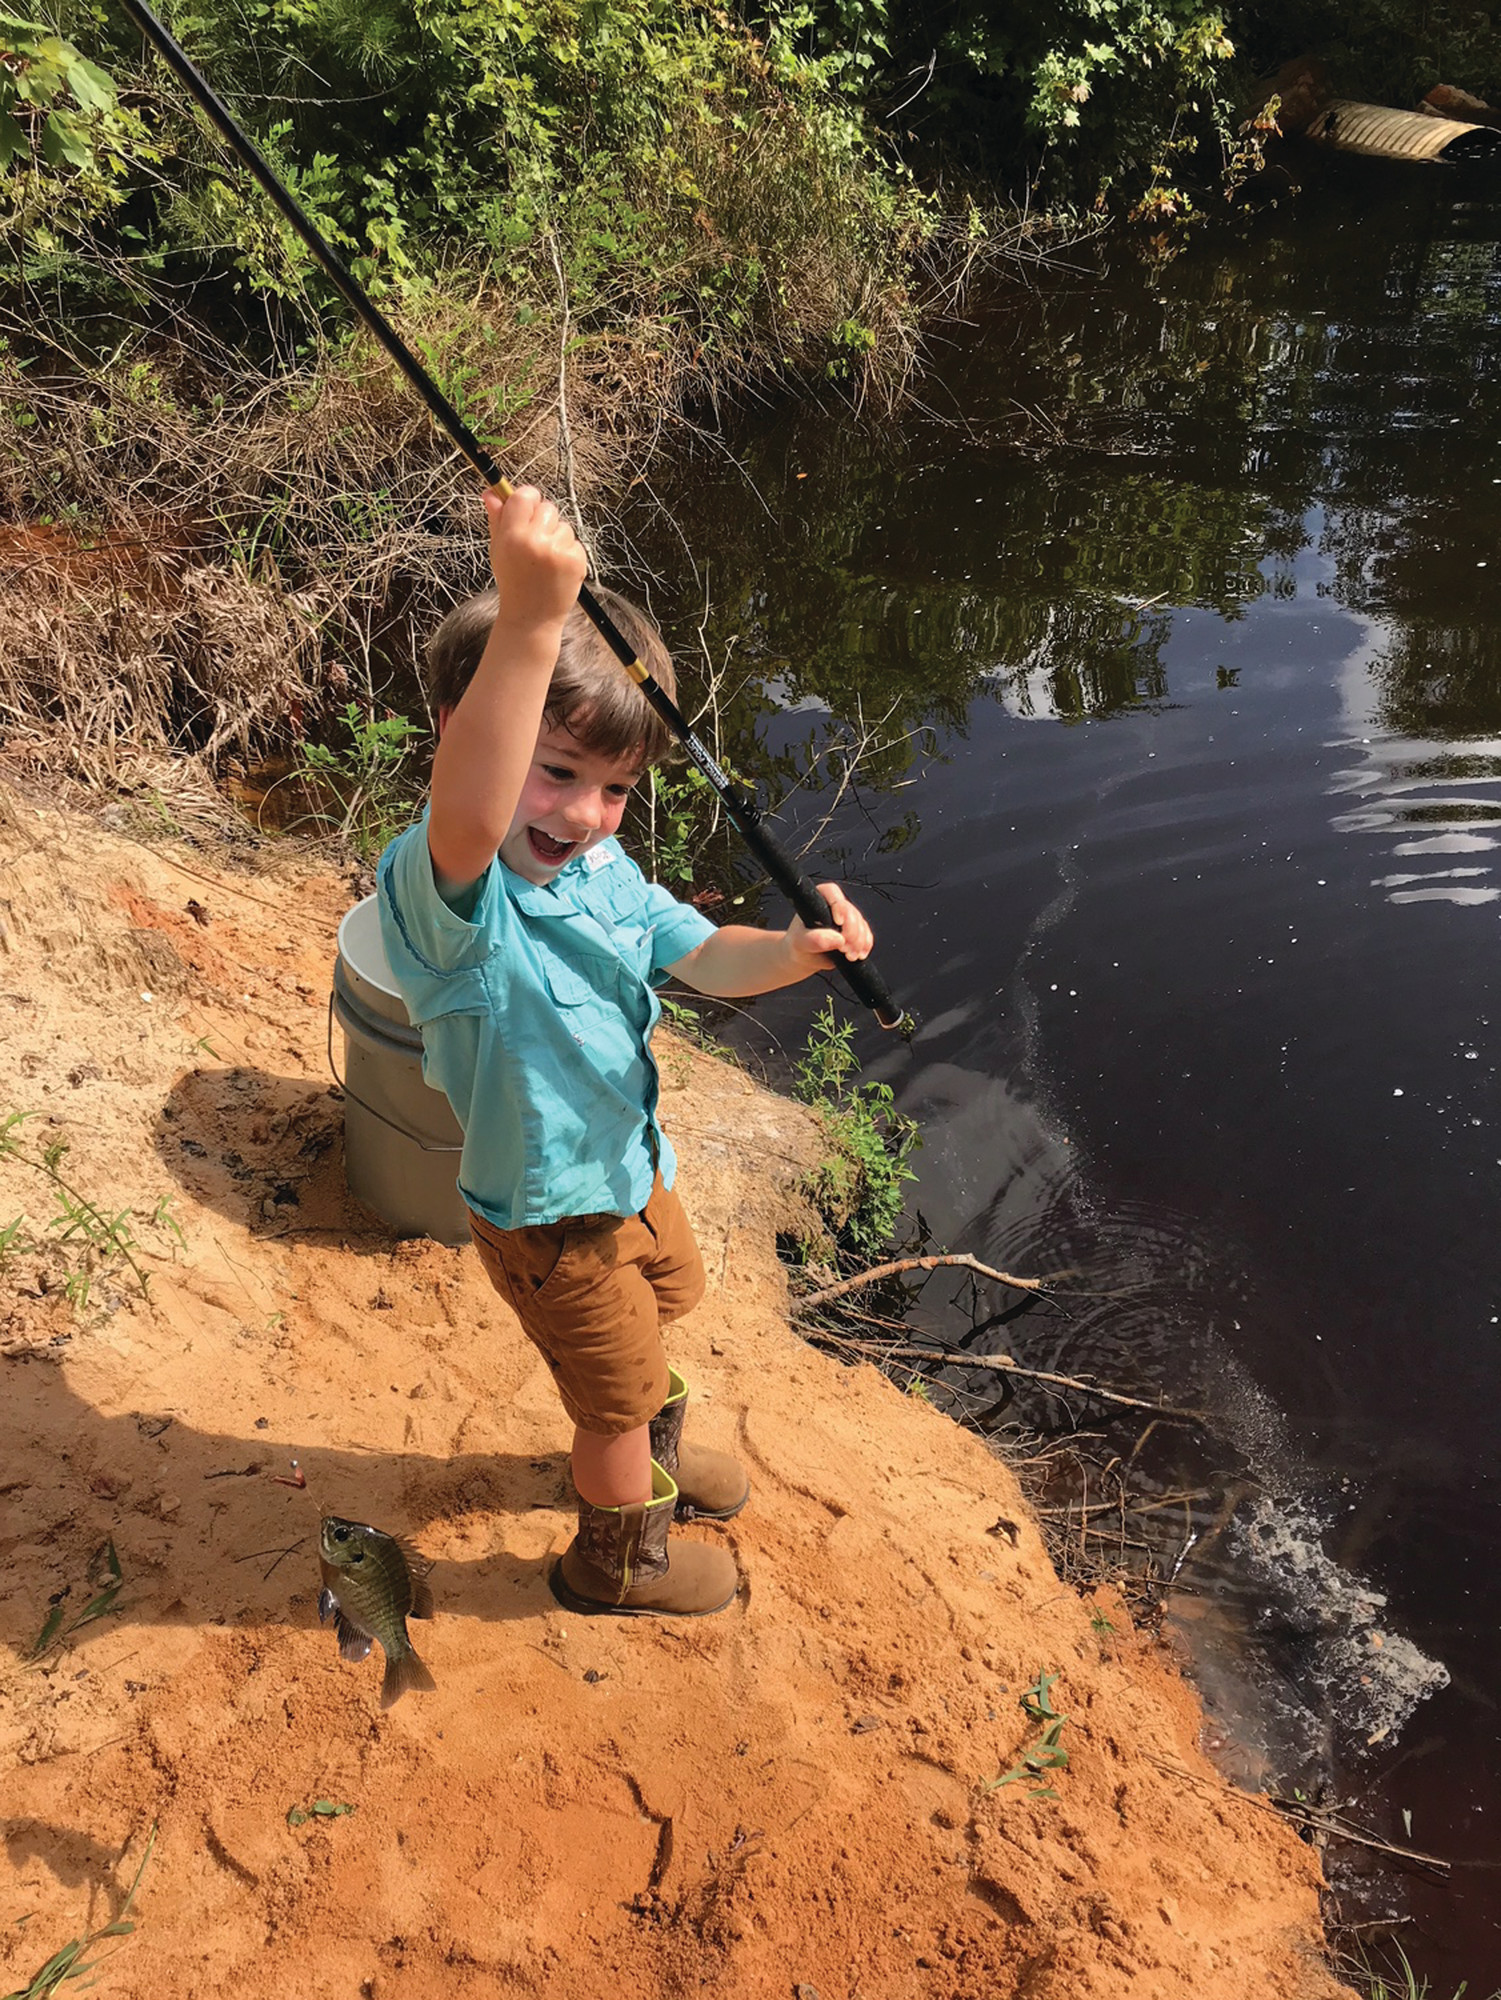 Shepherd Rowell, 3-year-old son of Michael and Kelly Rowell, reacts to his first catch (a bream) June 30 at a private pond in Pinewood.